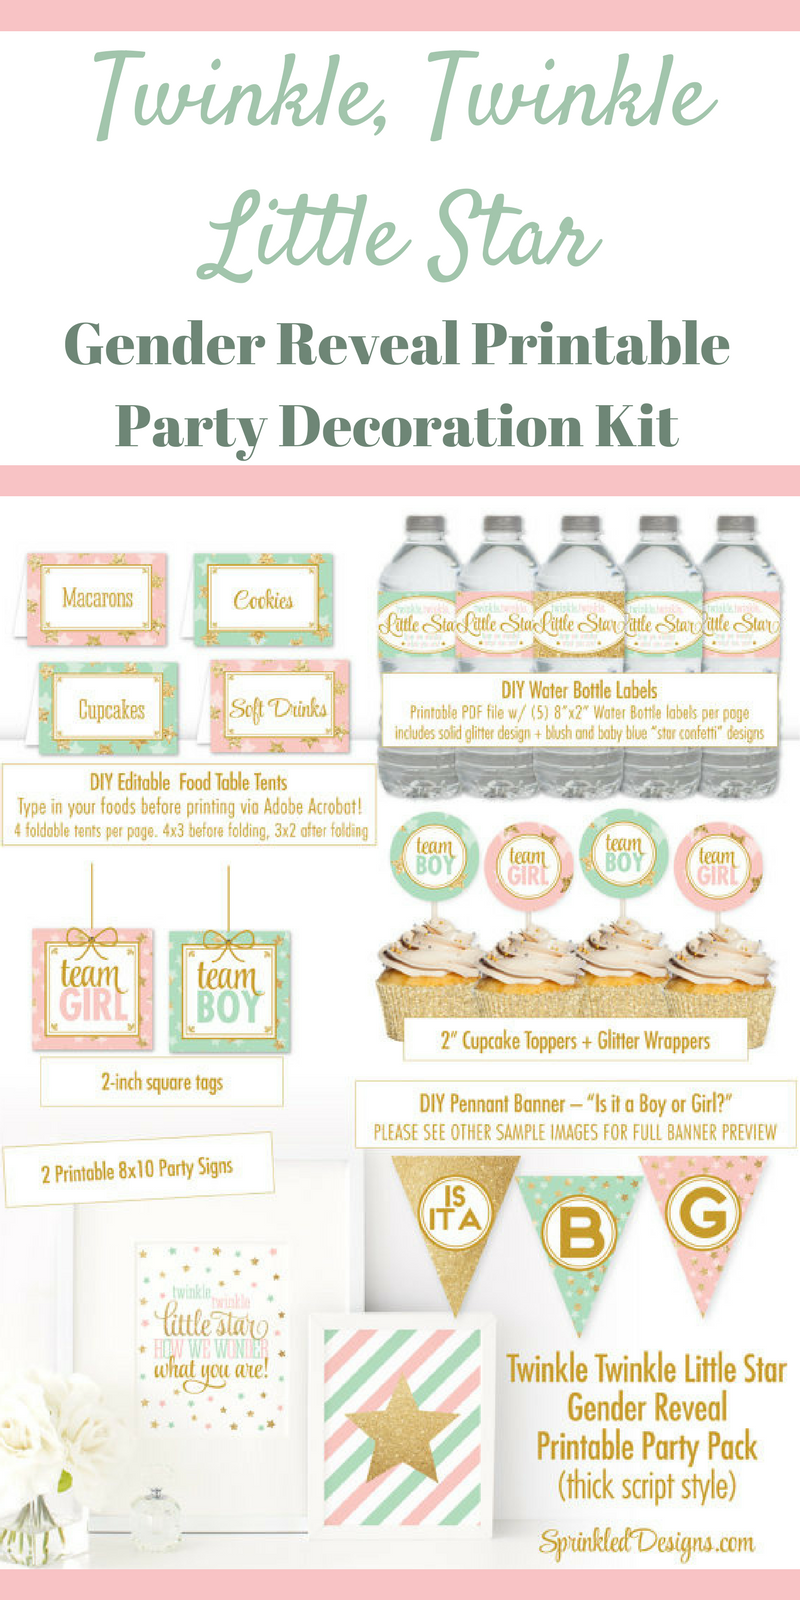 Twinkle Twinkle Little Star Gender Reveal Party Decoration Kit Printable Gender Reveal Party Ideas Twinkle Twinkle Little Star Party Decor Cupcake Wrapper